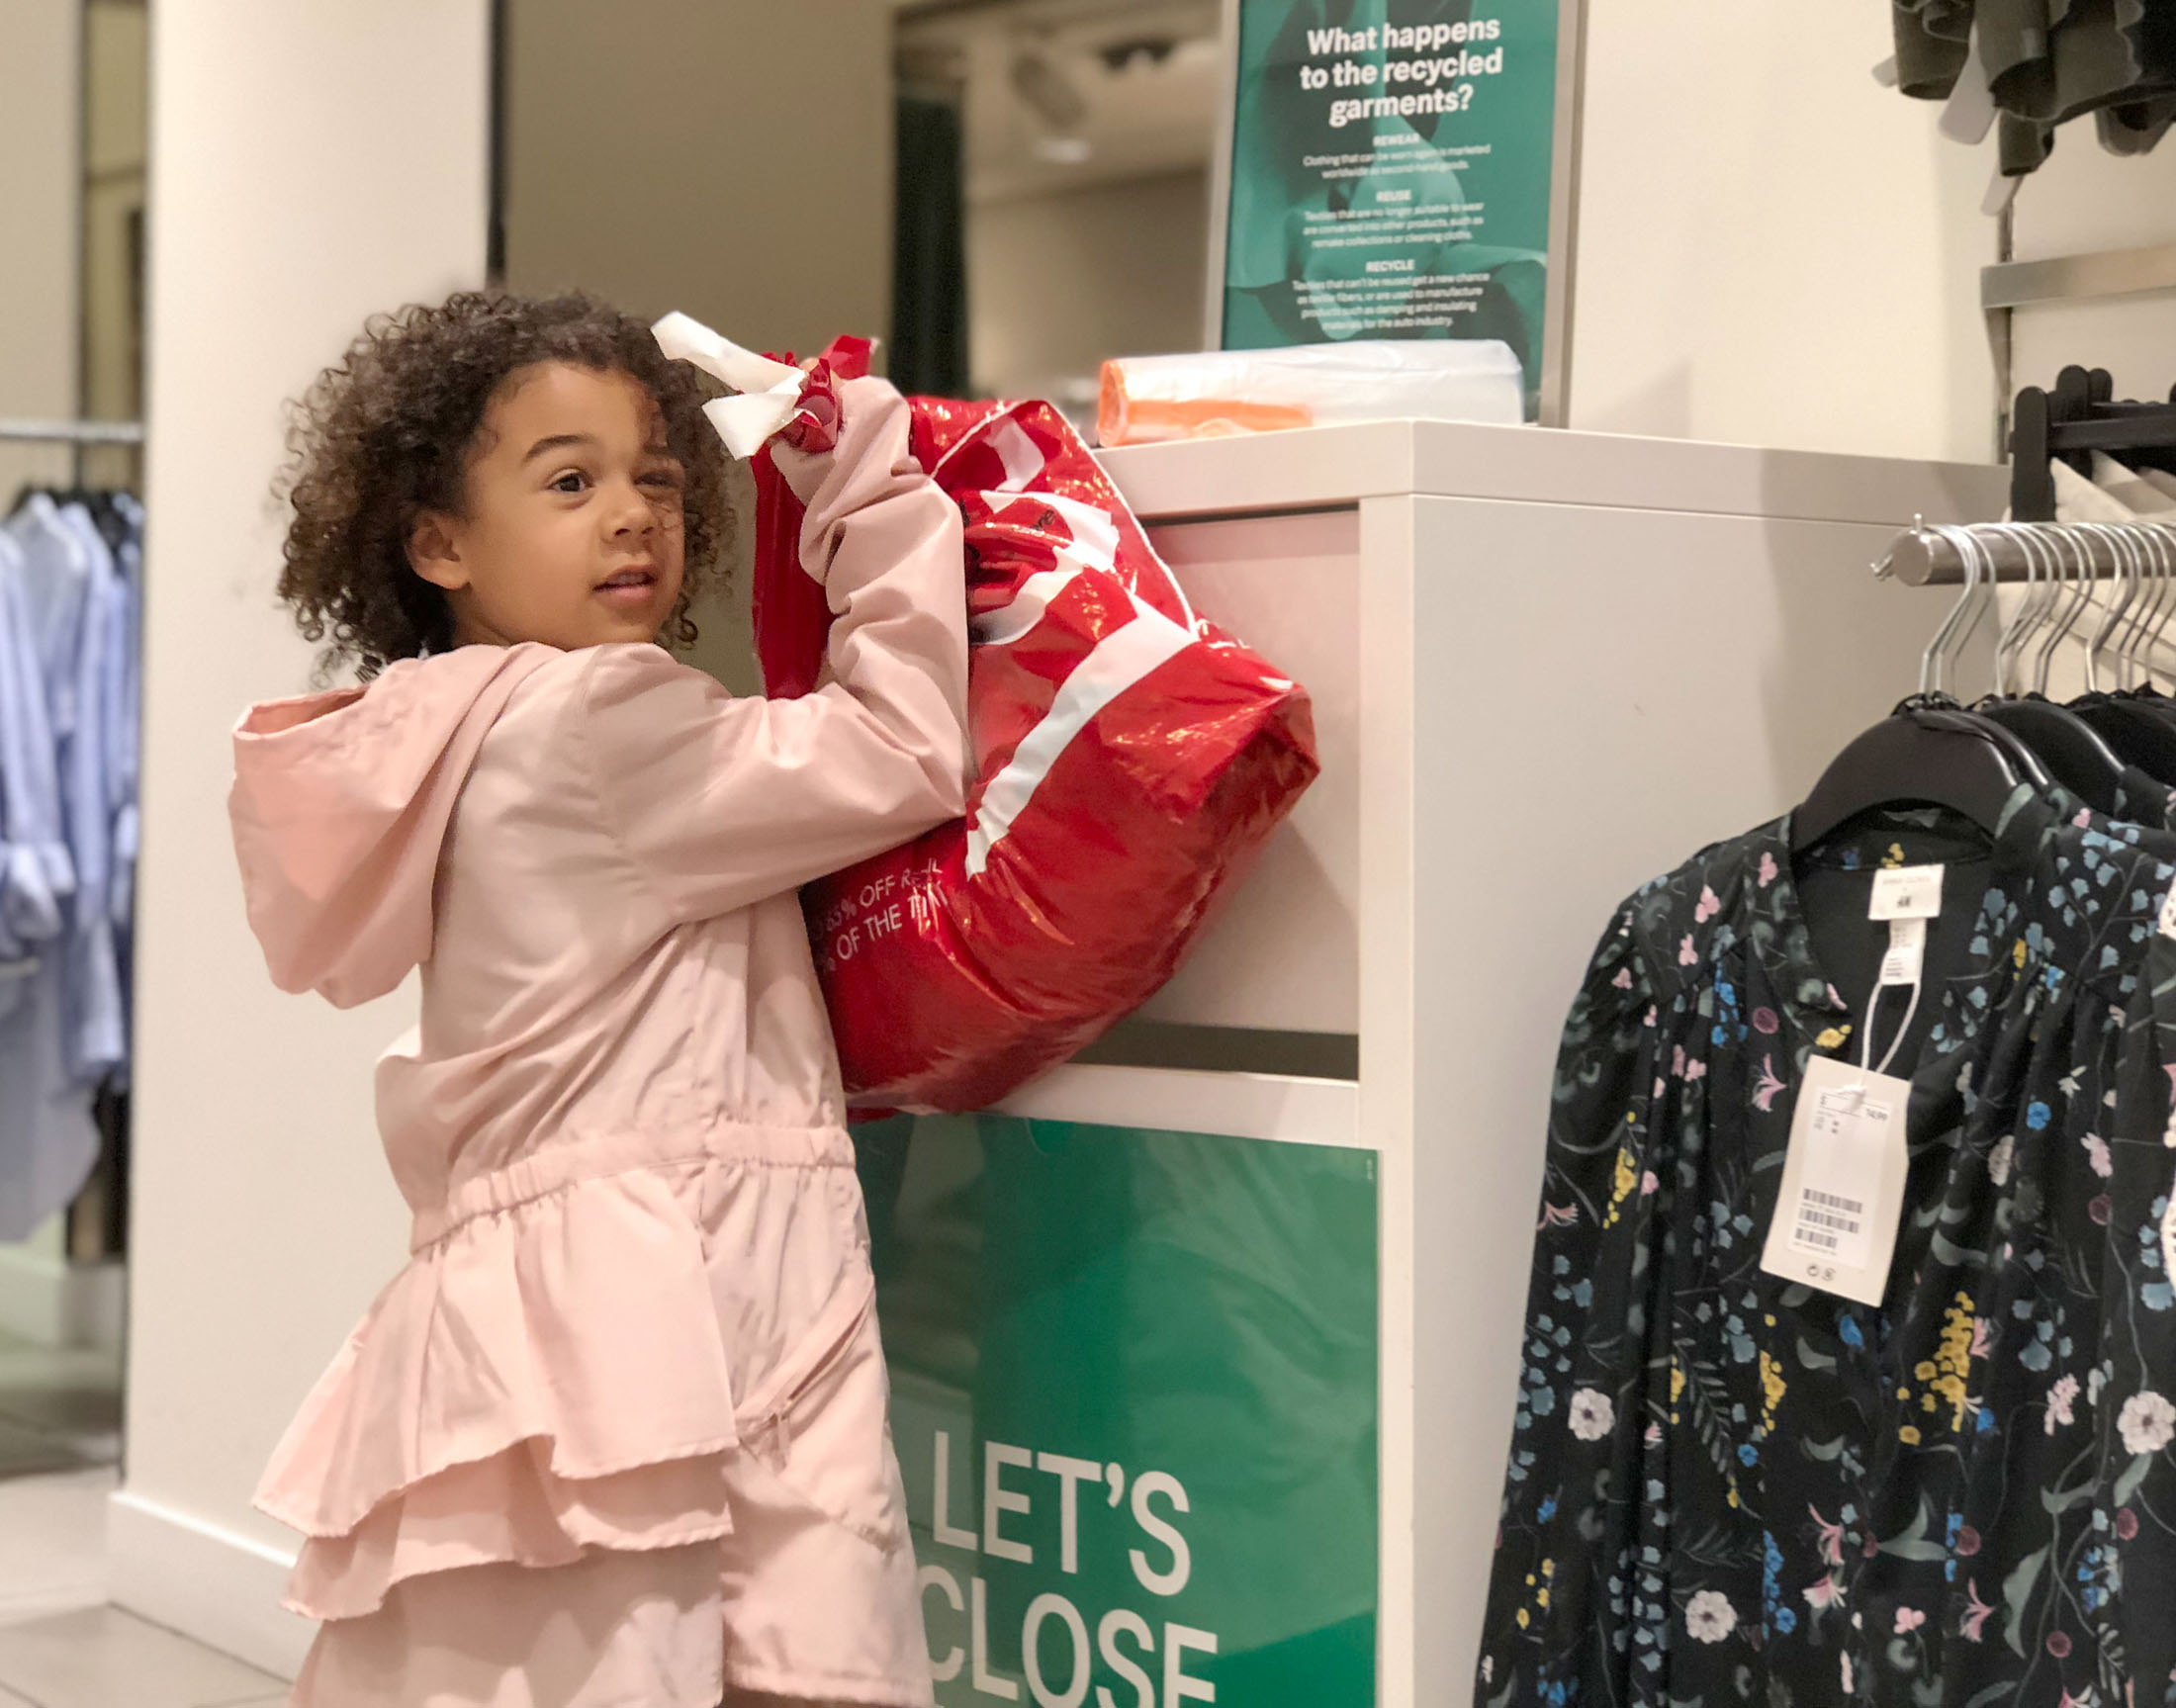 Reducing waste is 1 step toward sustainable fashion. Brands who donate, repair, reuse & recycle clothes make it easier. These 12+ retailers reward us, too.